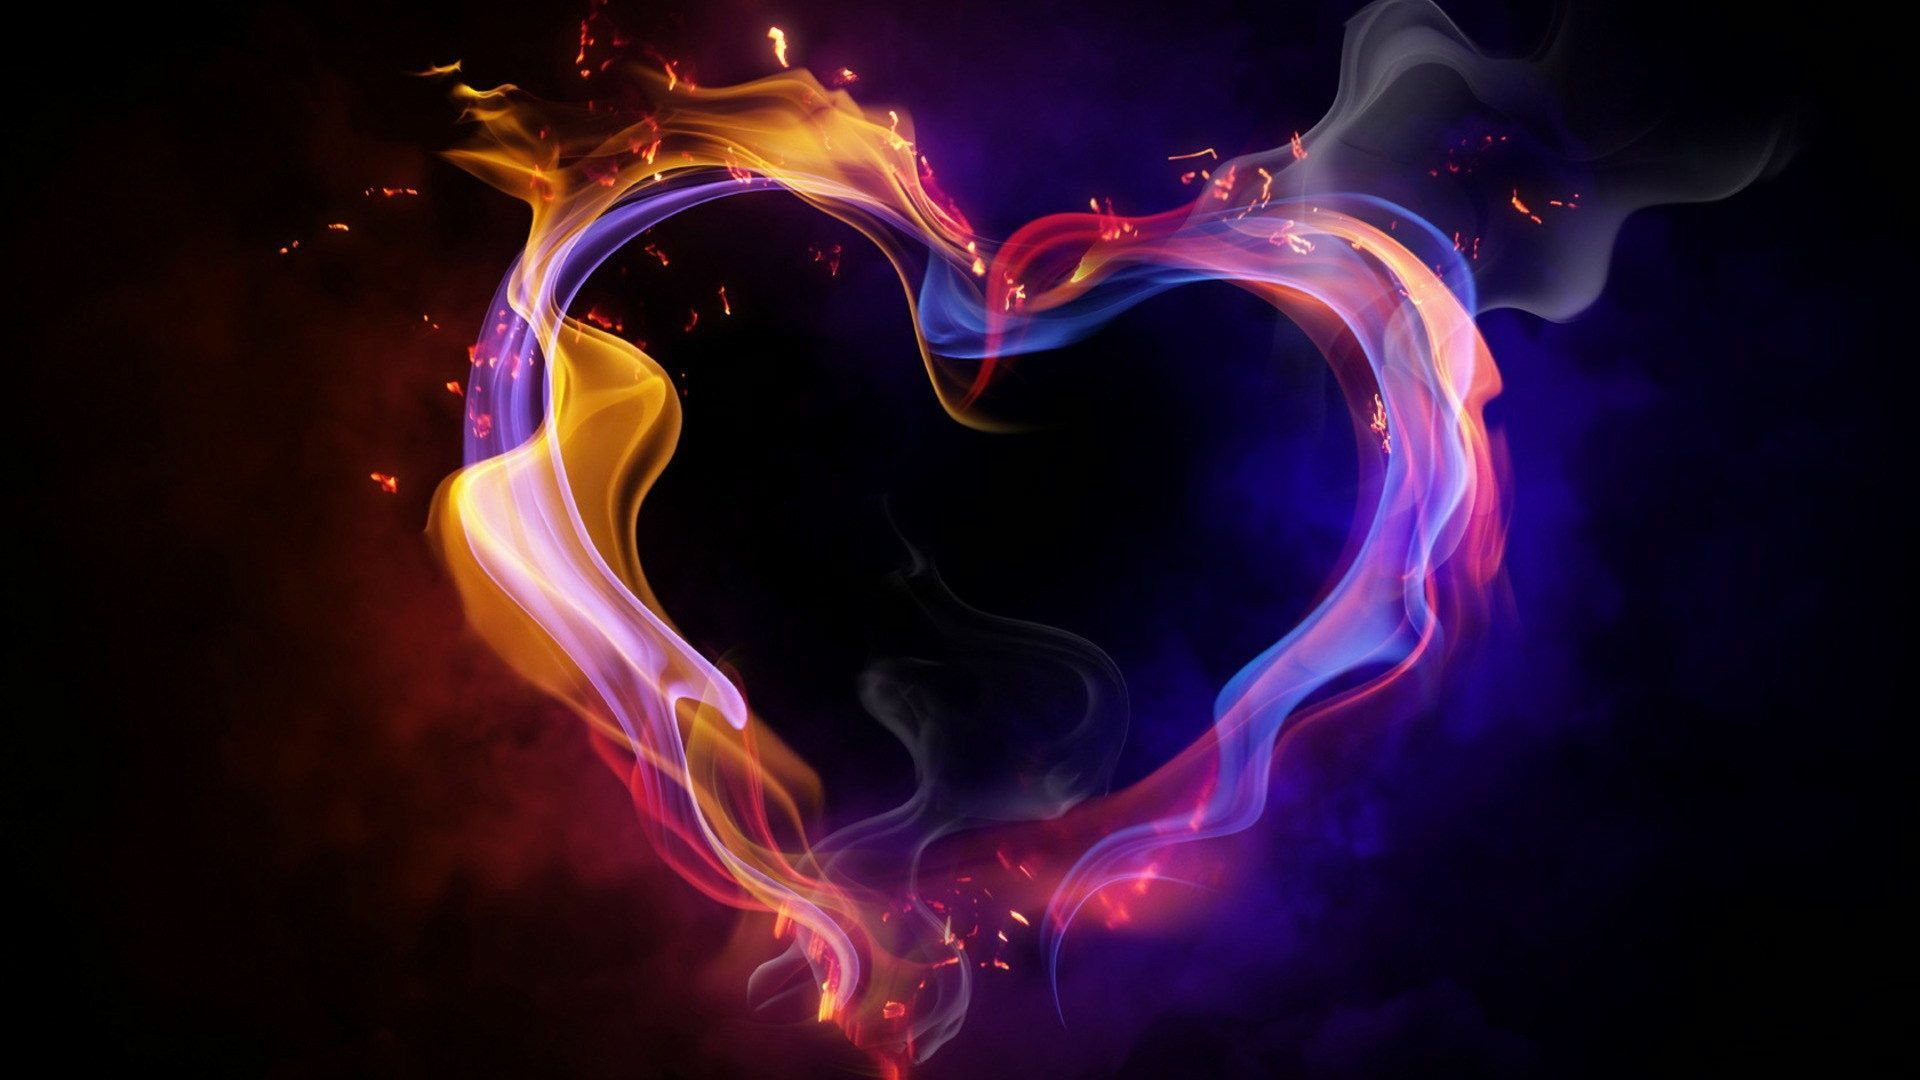 Cool Heart Wallpapers